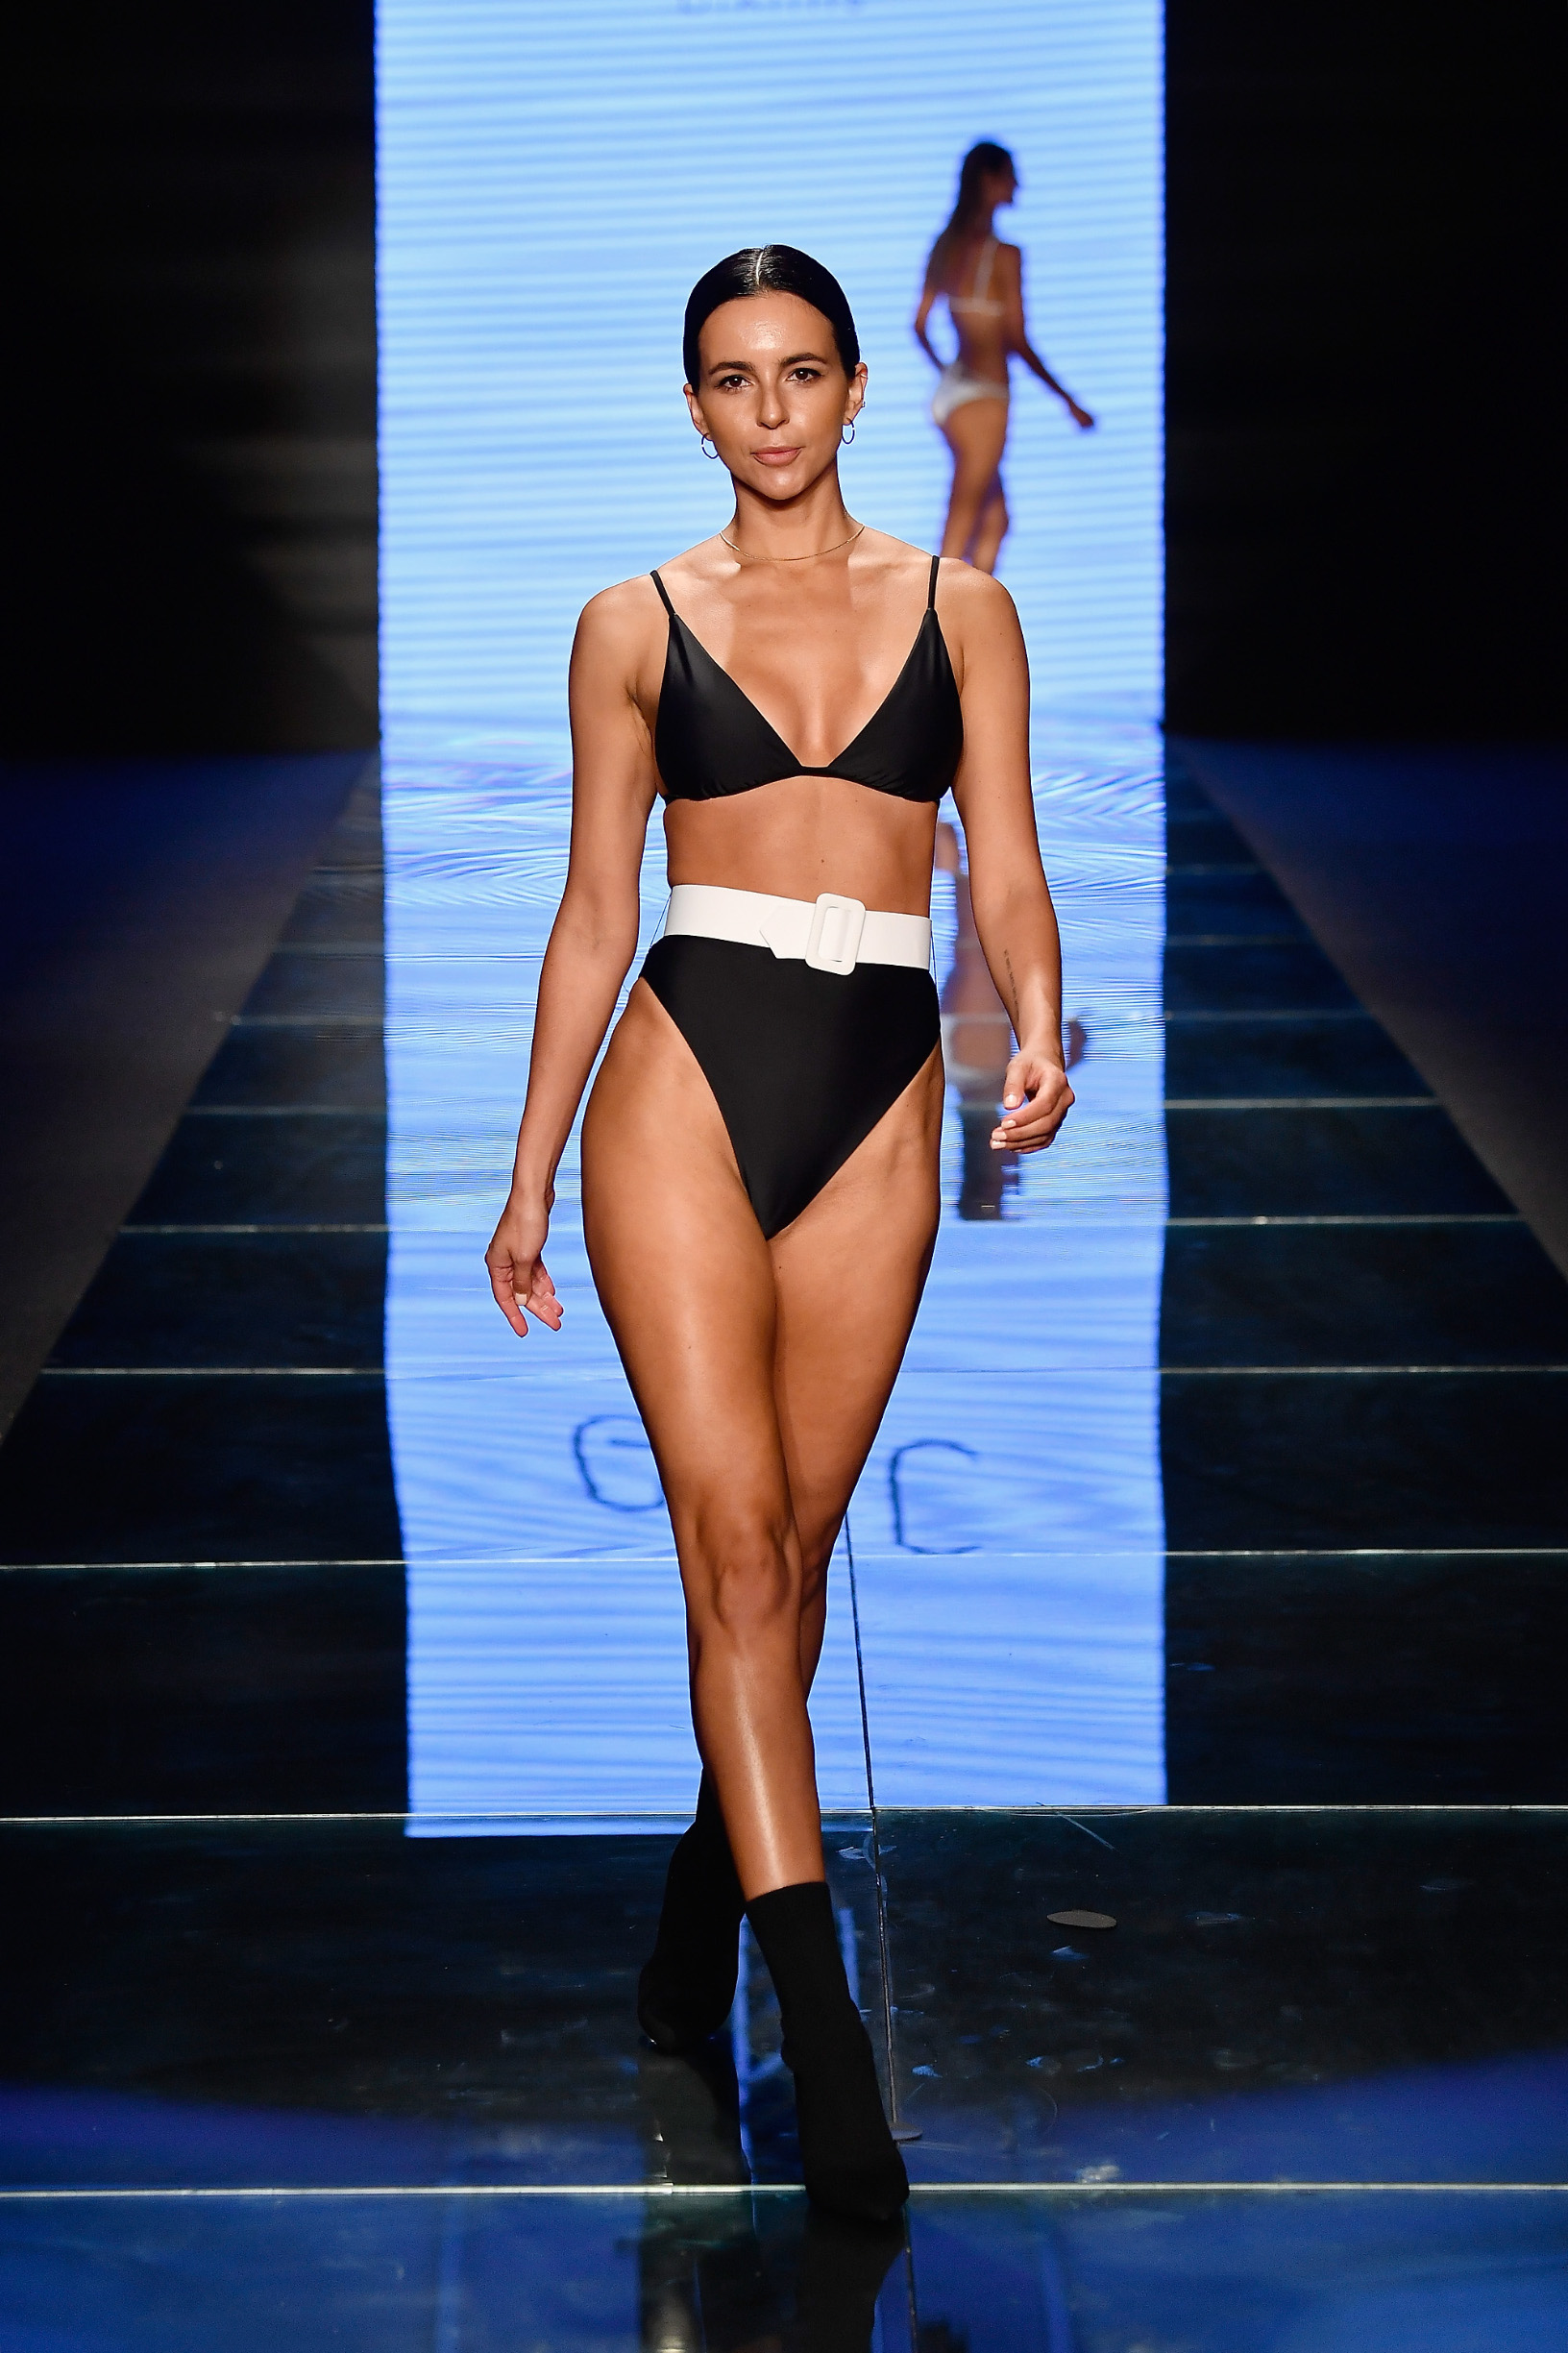 MIAMI BEACH, FL - JULY 14:  A model walks the runway for Gigi C Bikinis during the Paraiso Fashion Fair at The Paraiso Tent on July 14, 2018 in Miami Beach, Florida.  (Photo by Frazer Harrison/Getty Images for Gigi C Bikinis )